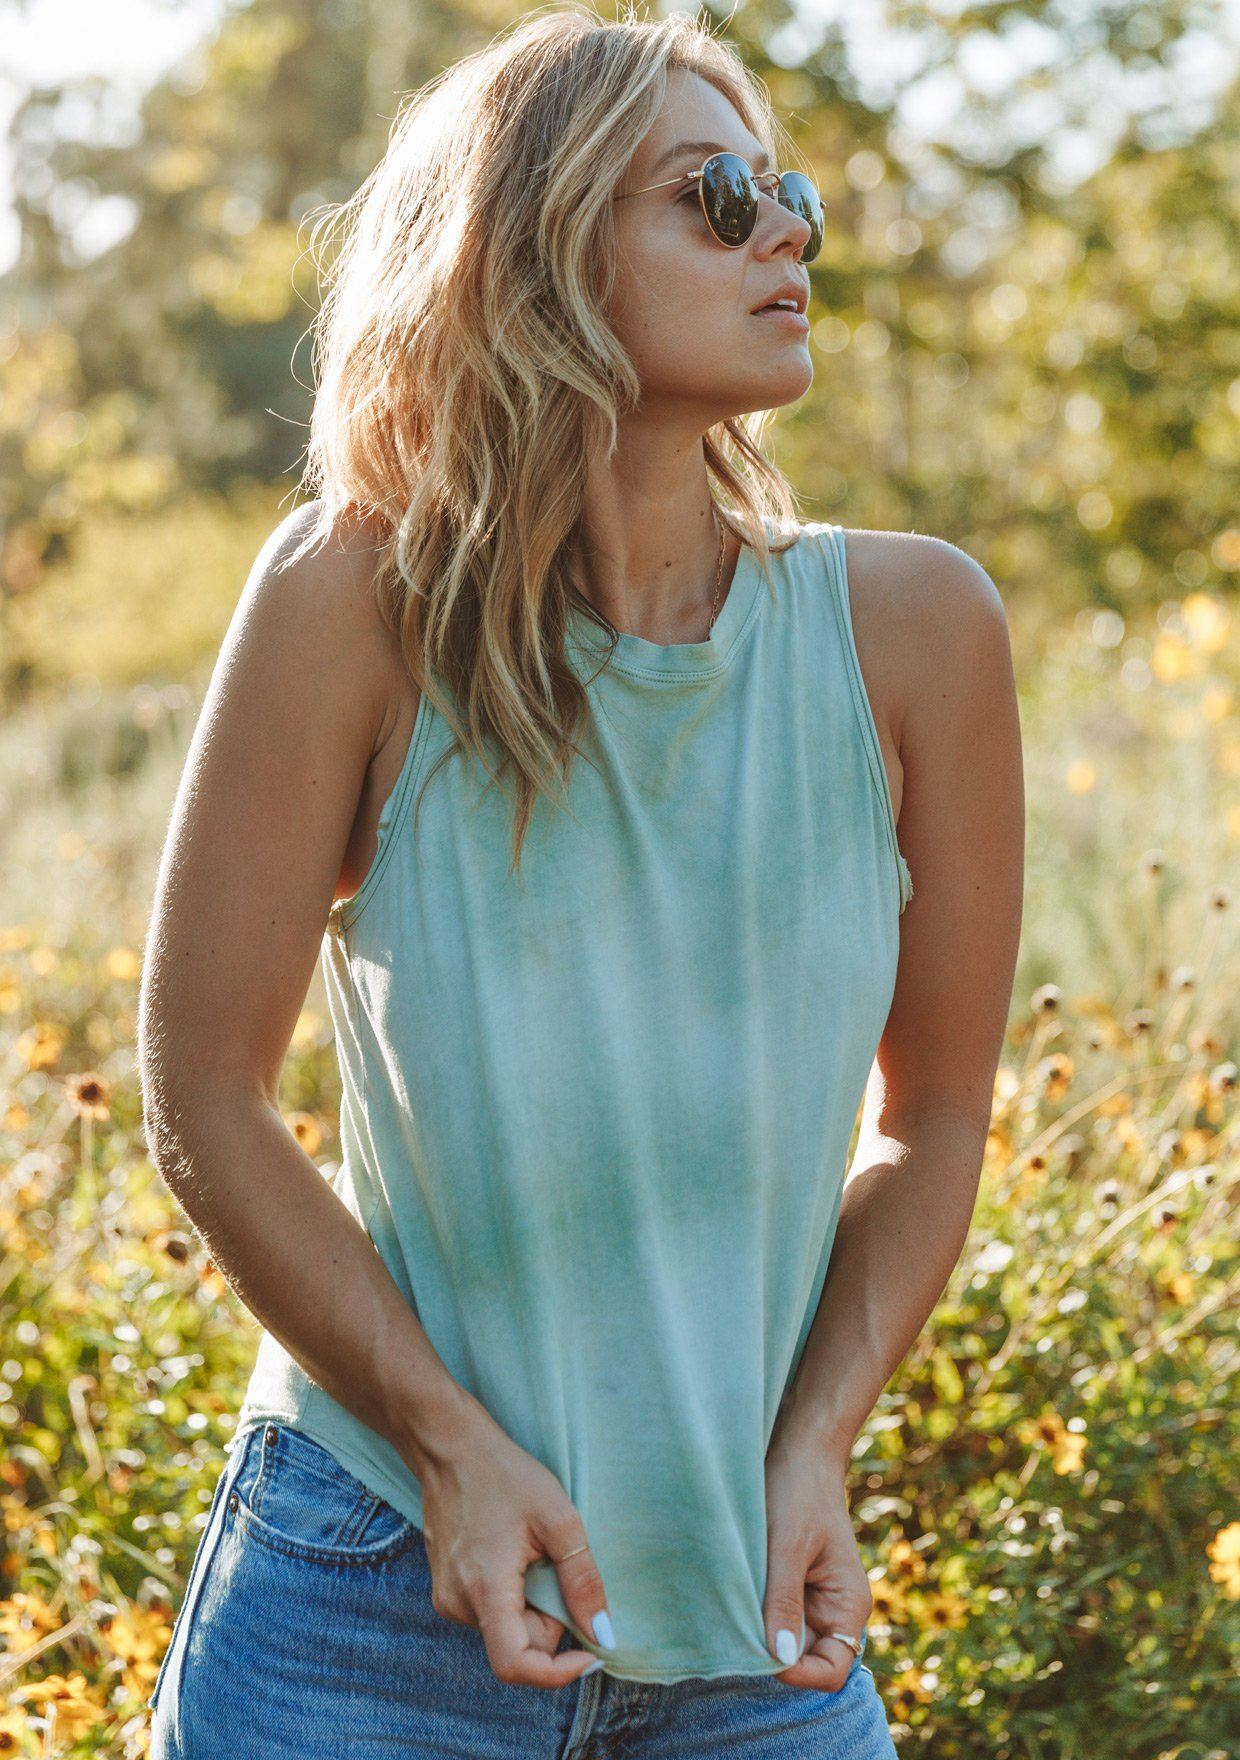 [Color: Green] Lovestitch bohemian chic tie dye racerback tank top with cute exposed seam